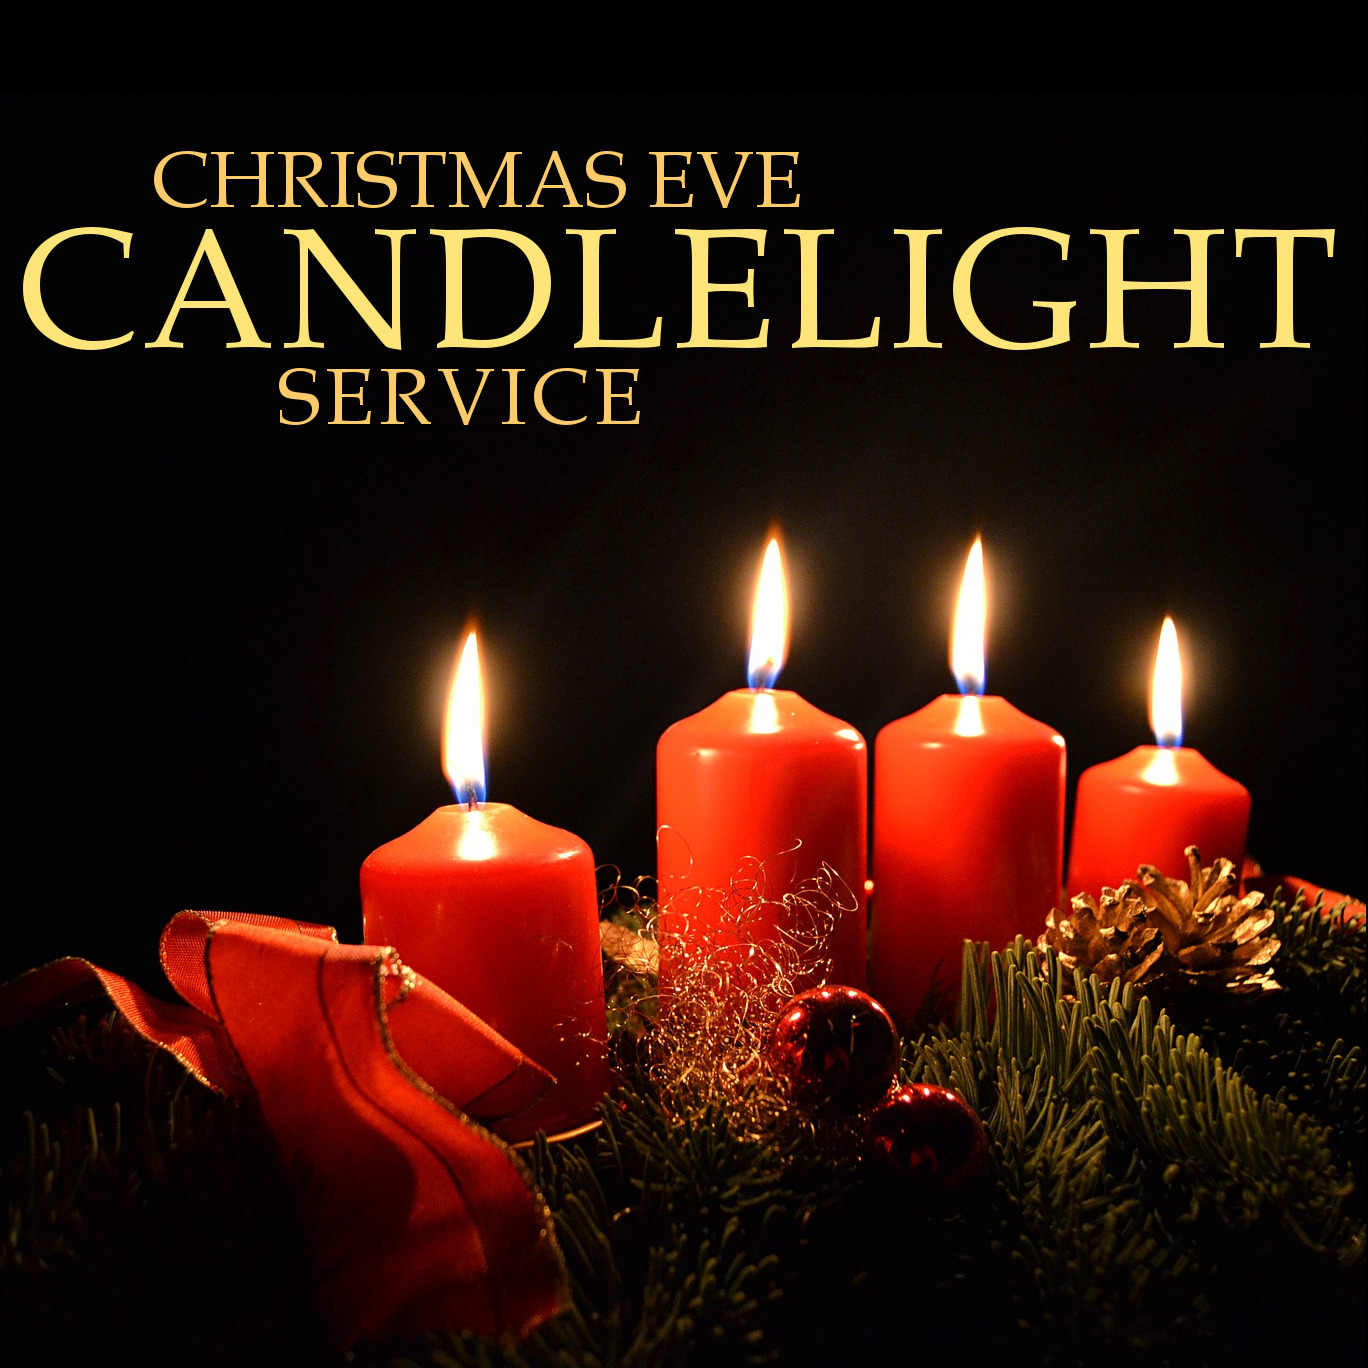 Holiday service Beaumont, Christmas Eve worship Golden Triangle, church directory Beaumont TX, churches to visit East Texas,